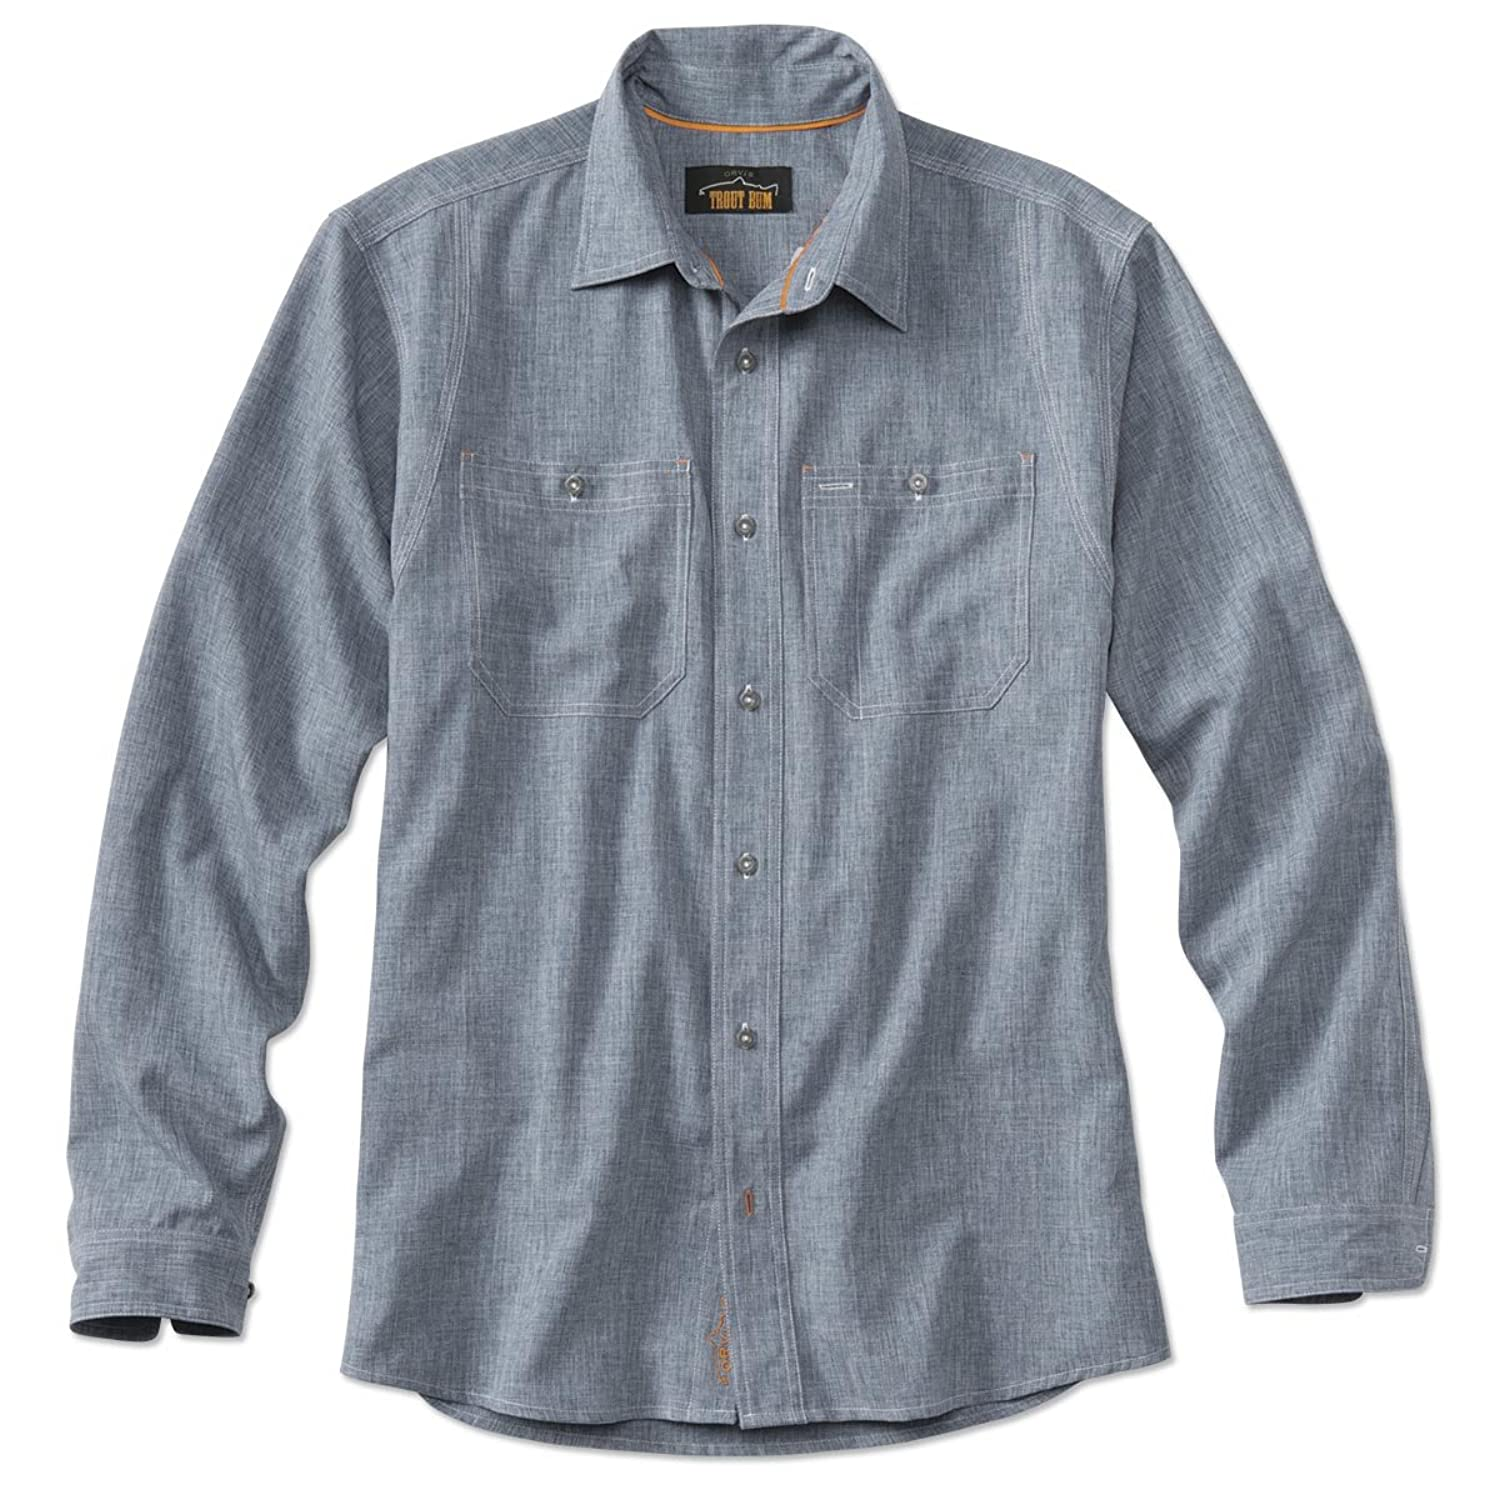 Edwardian Men's Shirts & Sweaters Orvis Tech Chambray Work Shirt $89.00 AT vintagedancer.com